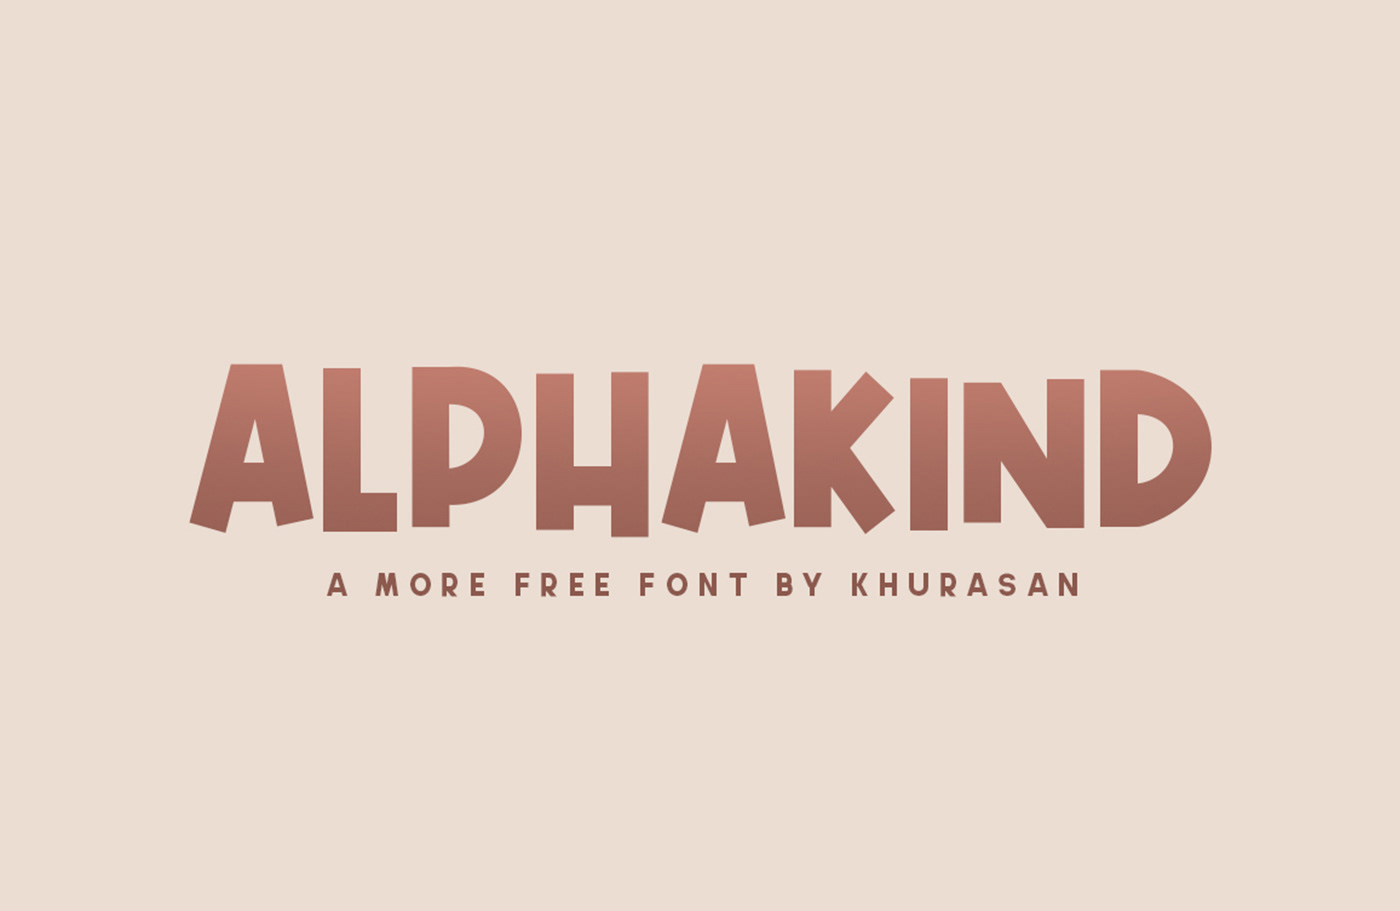 Alphakind Free Font - decorative-display